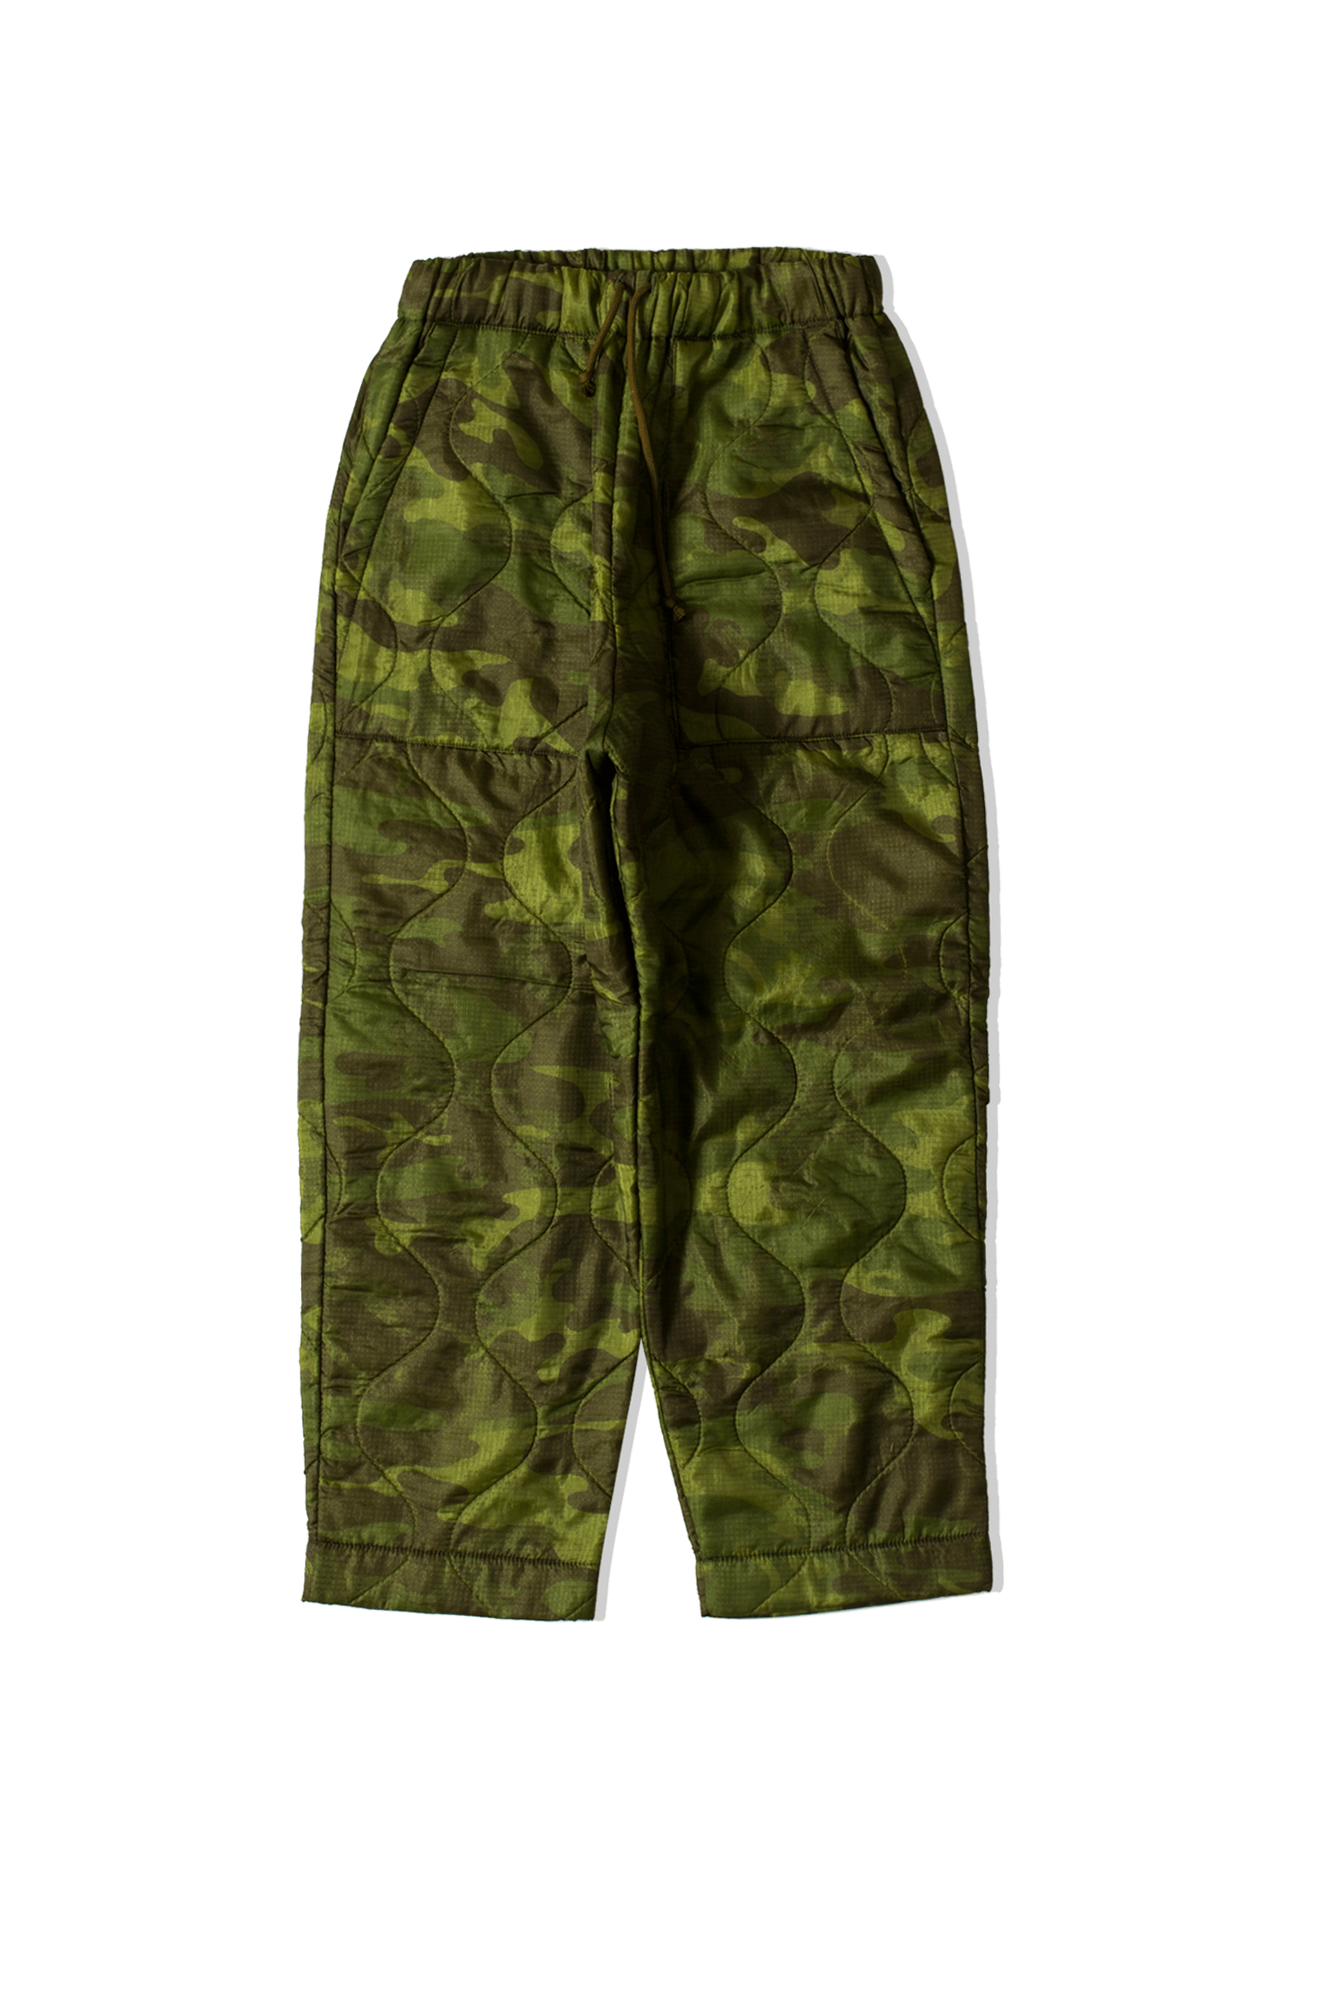 Myar Down pants MYPA11 Down Pants Green MYPA11#000#CAMO#S - One Block Down